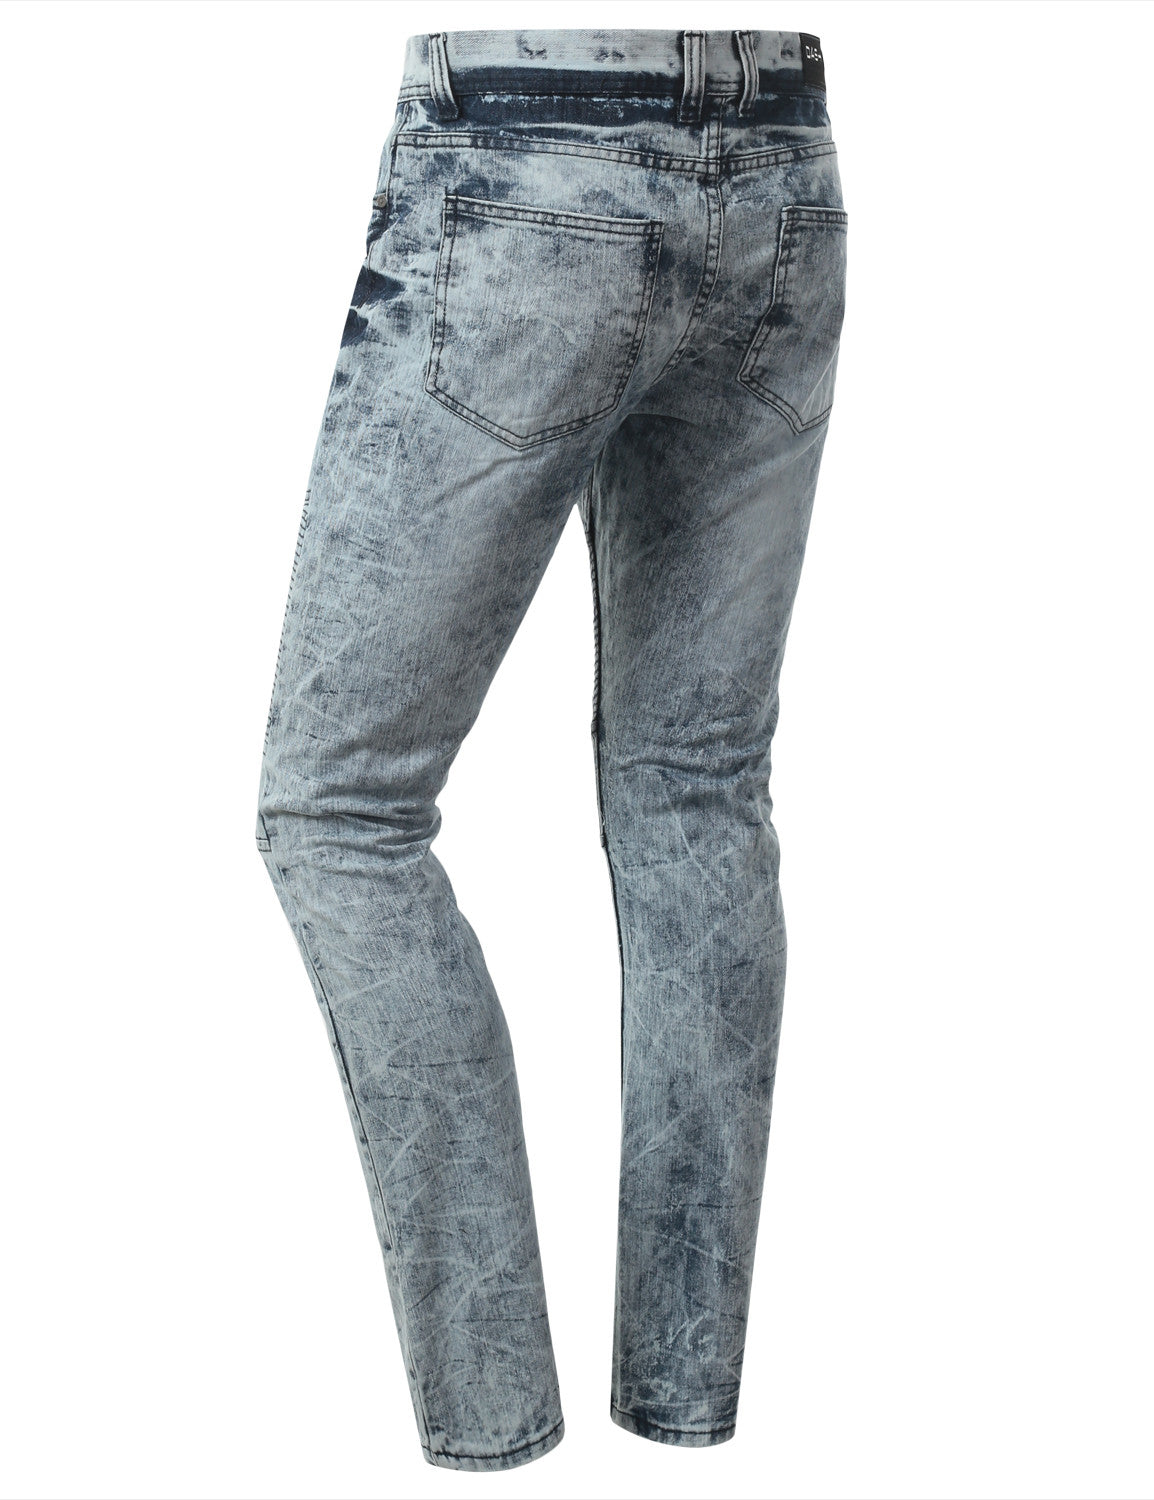 Straight Slim Fit Acid Wash Biker Jeans - URBANCREWS - 15